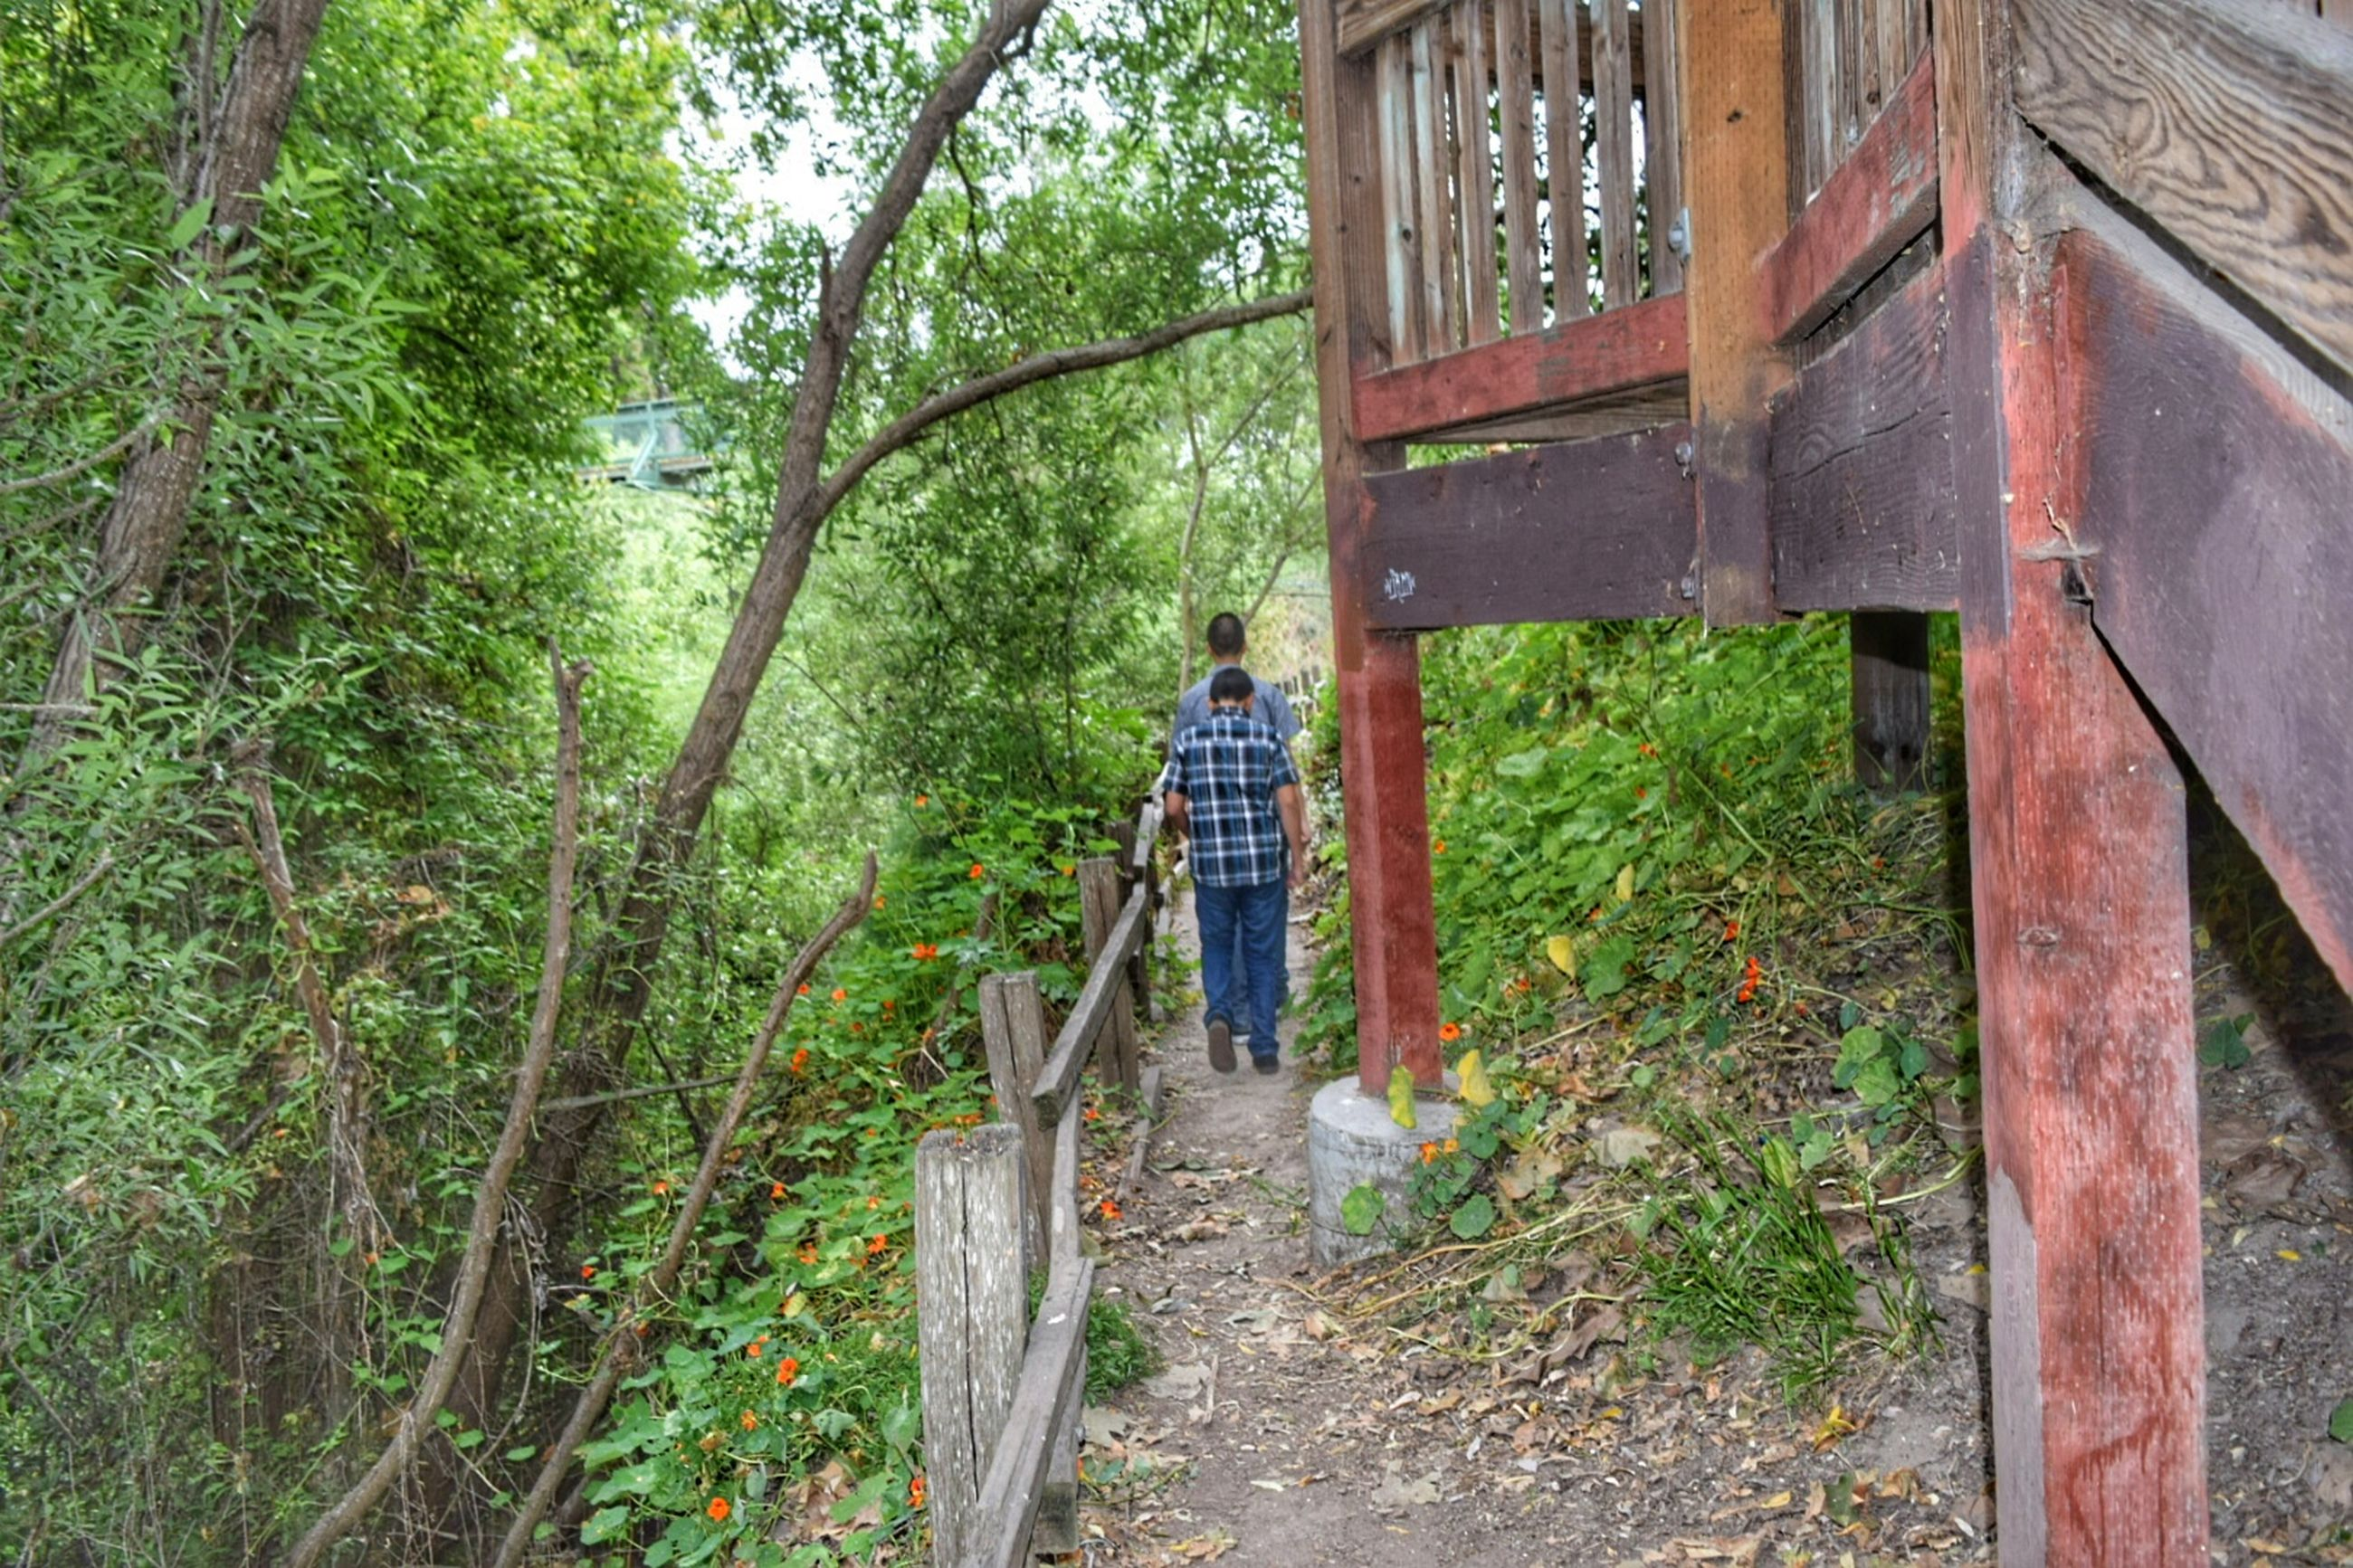 lifestyles, leisure activity, full length, tree, casual clothing, rear view, standing, built structure, green color, men, plant, day, growth, architecture, walking, outdoors, building exterior, wood - material